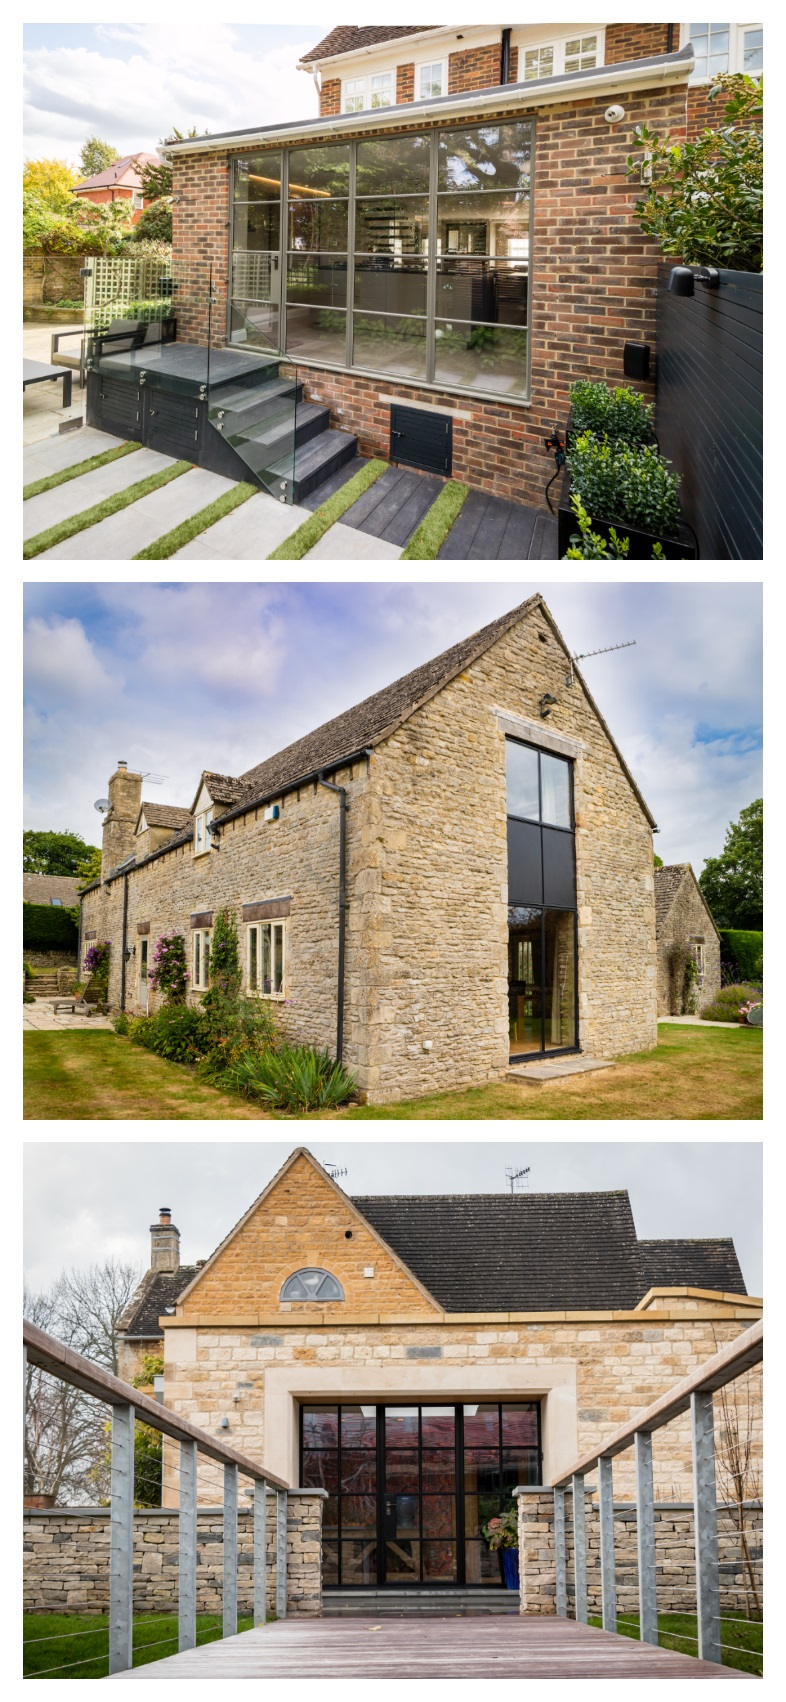 Property Architectural Photography Warwickshire Birmingham Midlands London UK 12